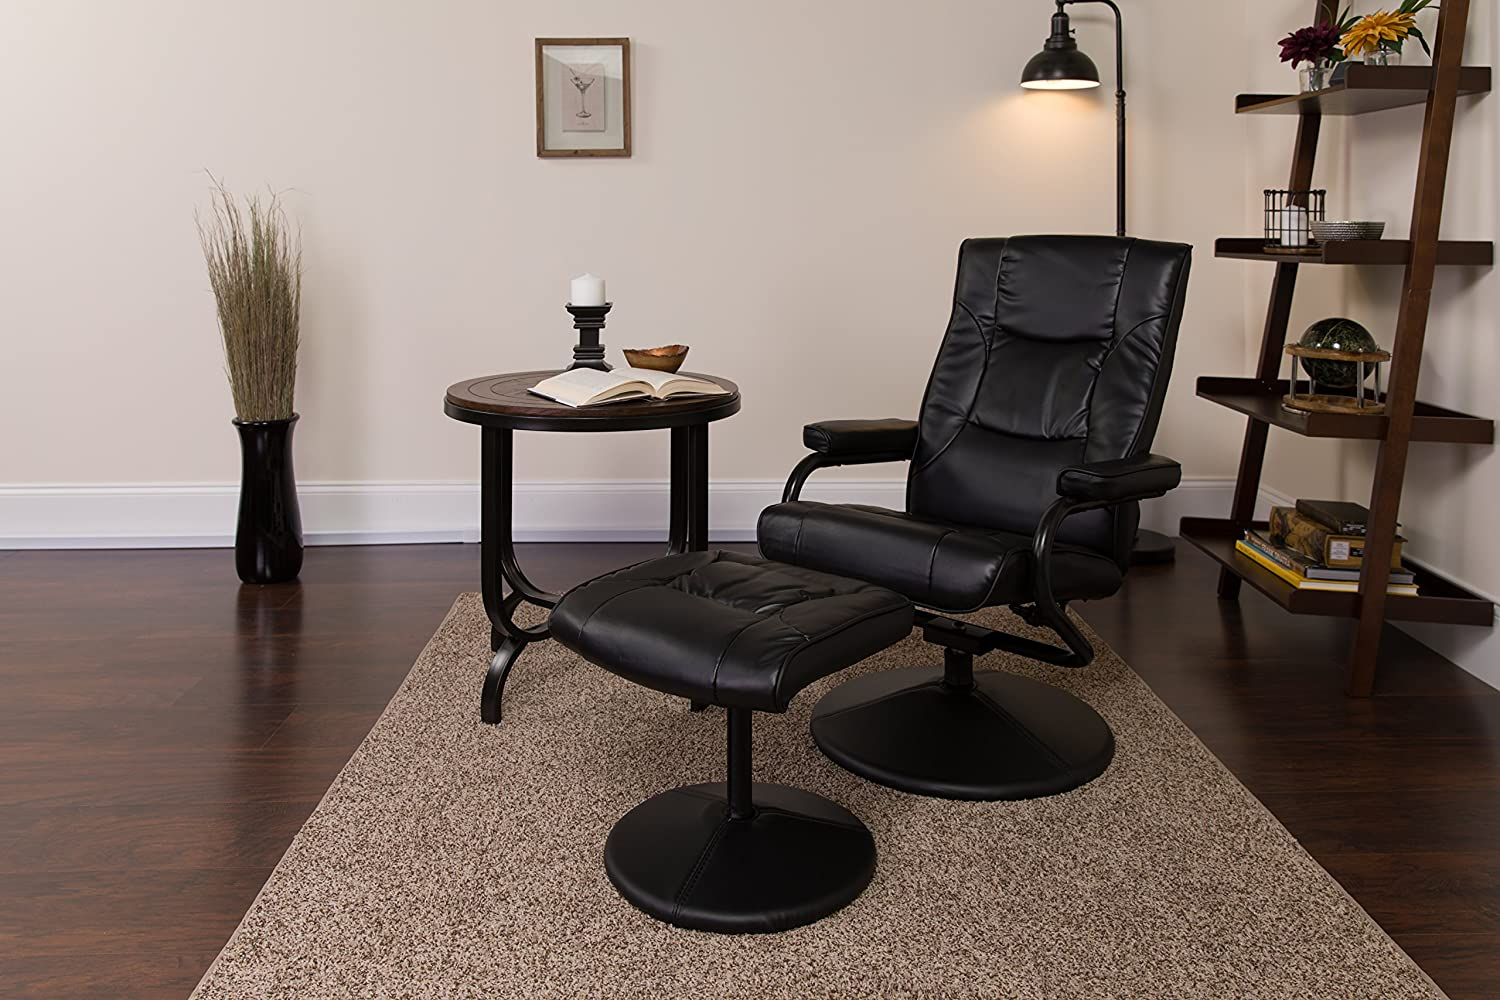 Top 10 Most Comfortable Chairs for Watching TV Reviews ...